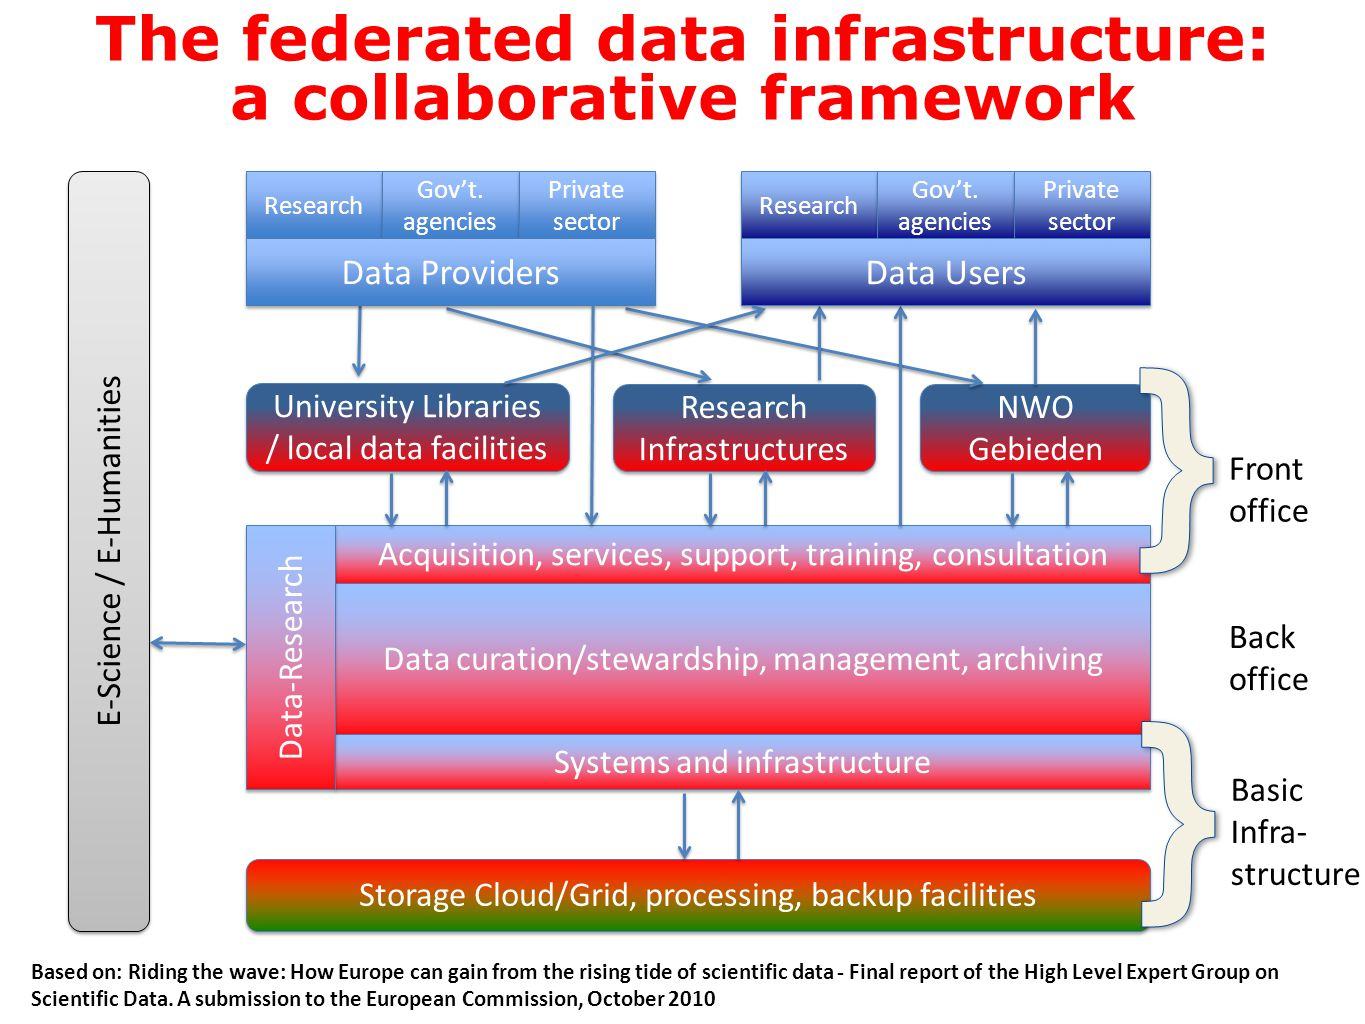 The federated data infrastructure: a collaborative framework